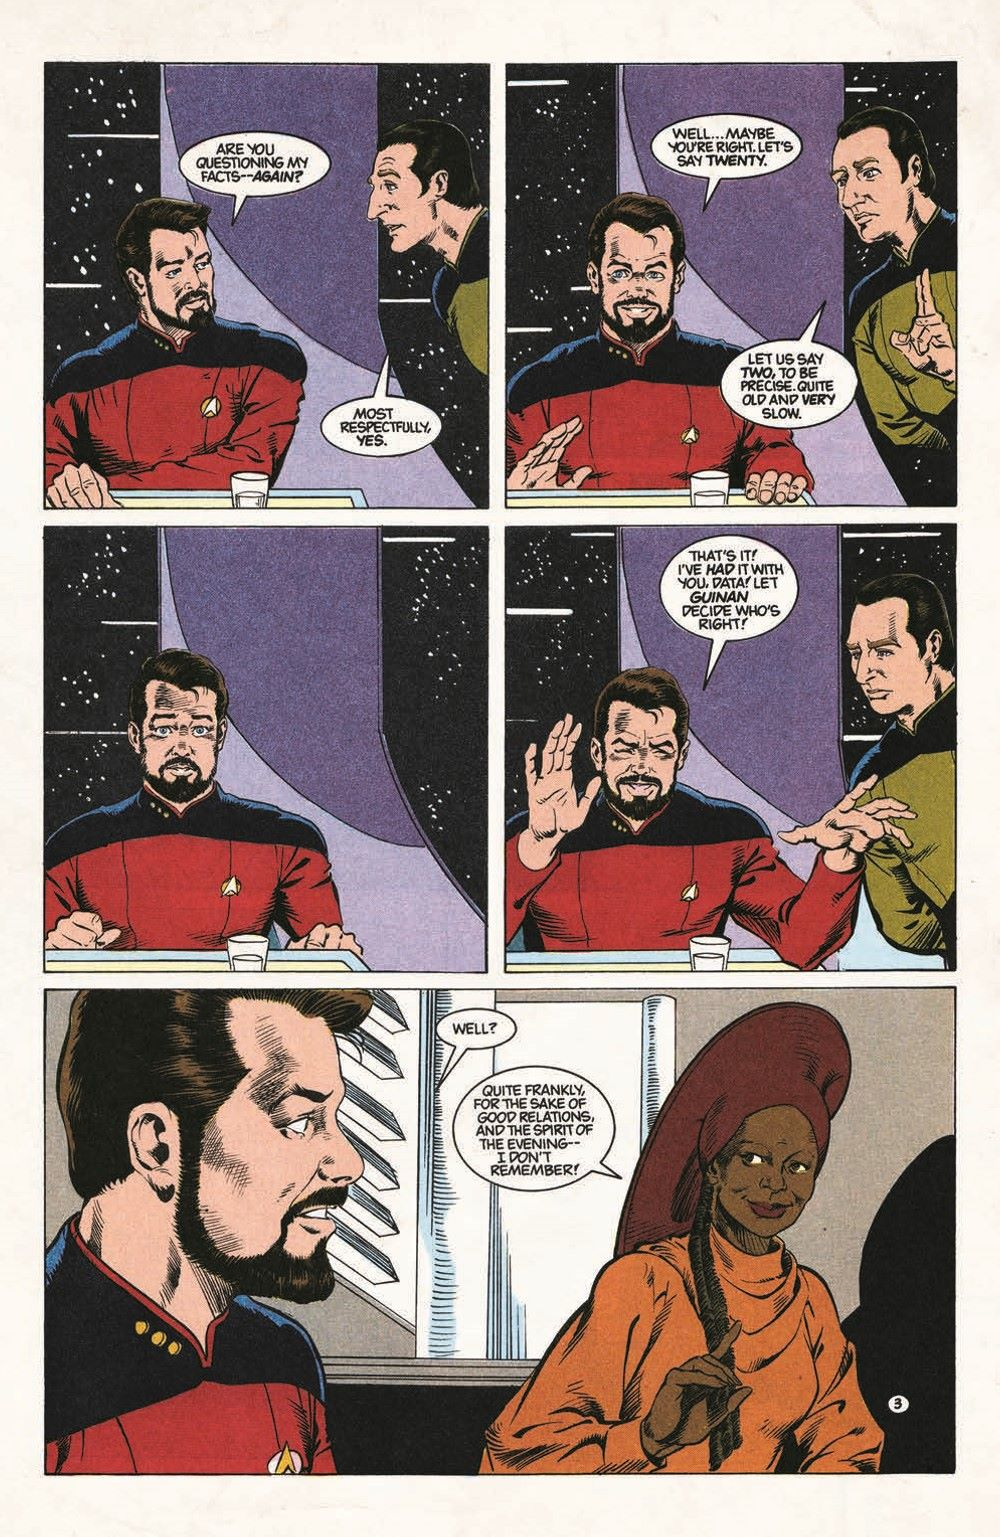 ST_TNG-TheGift-pr-5 ComicList Previews: STAR TREK THE NEXT GENERATION THE GIFT #1